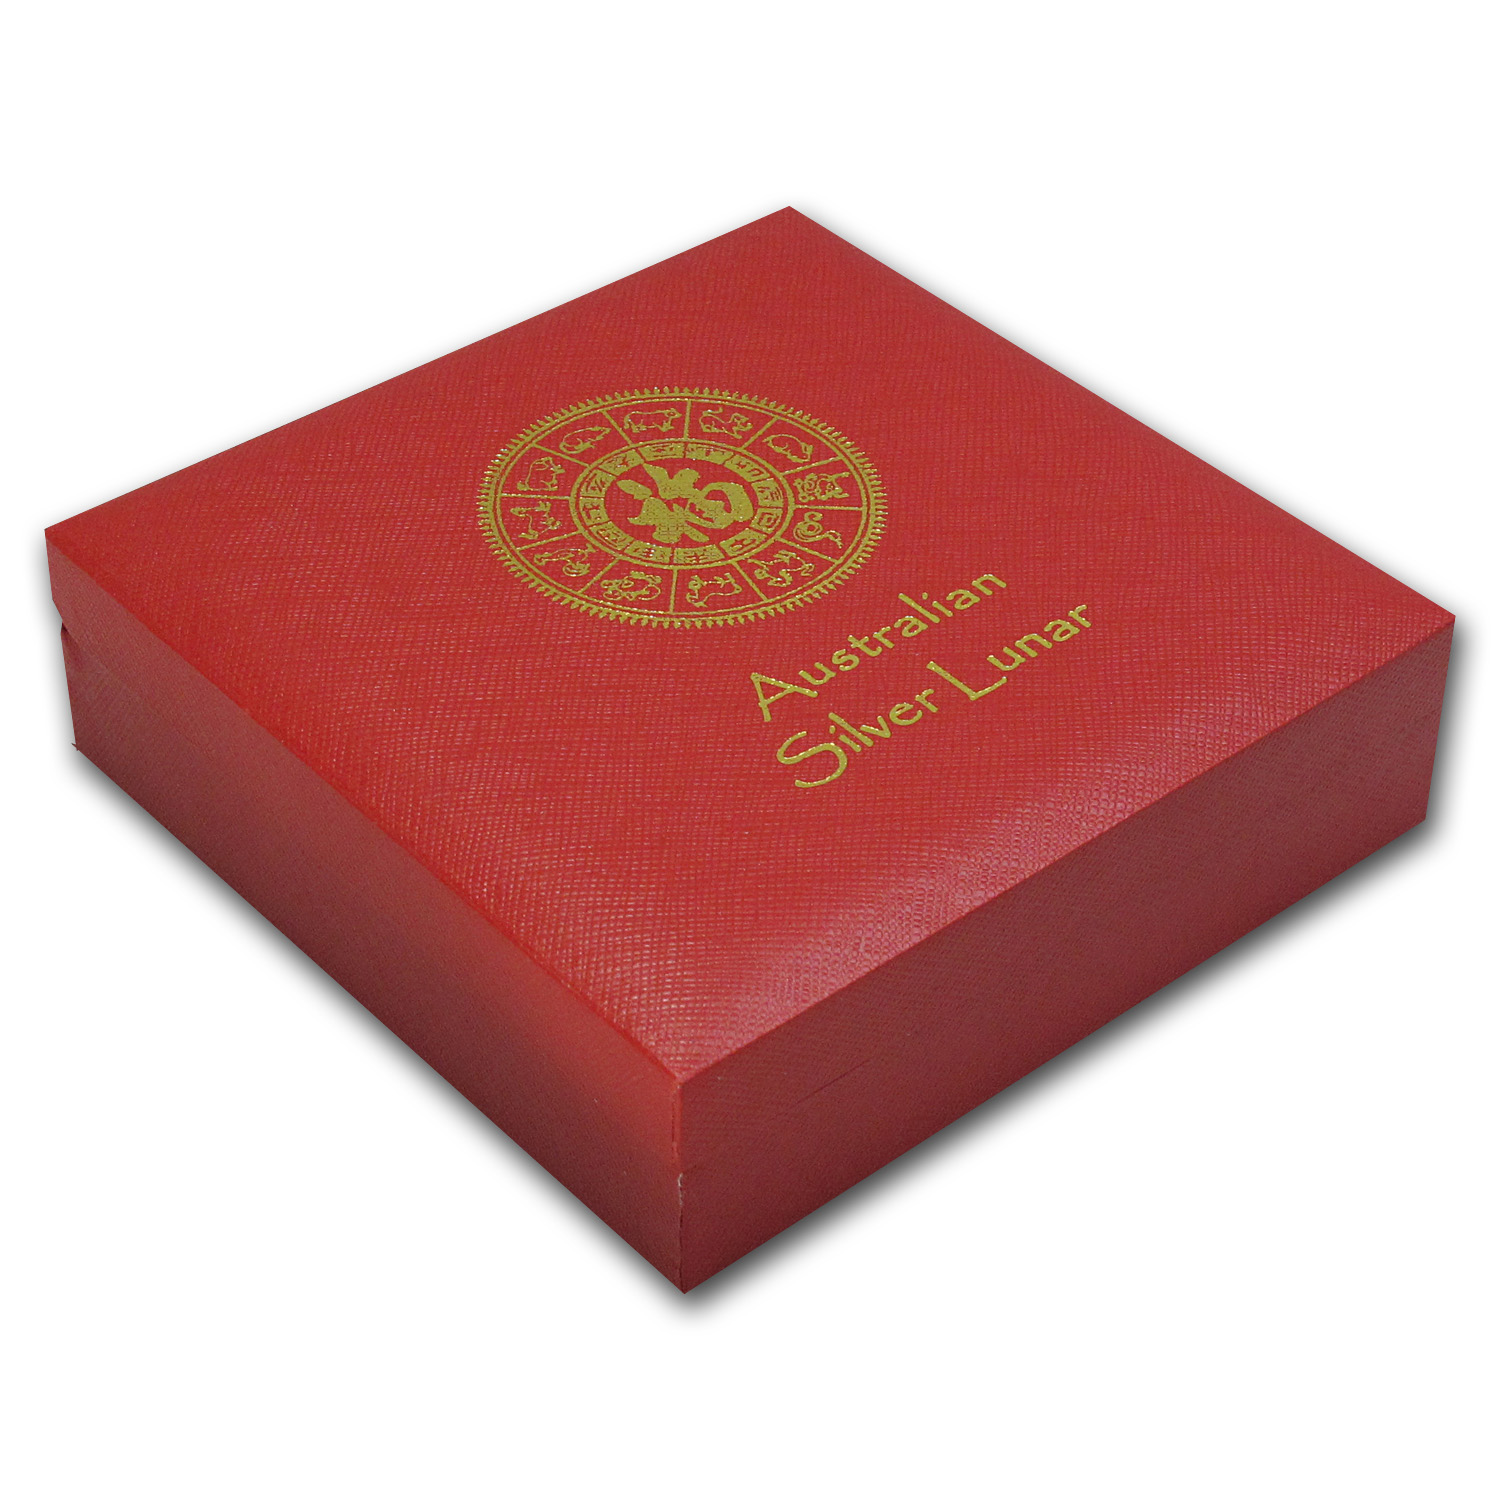 Lunar Series II (Kilo Silver) Red Presentation Box